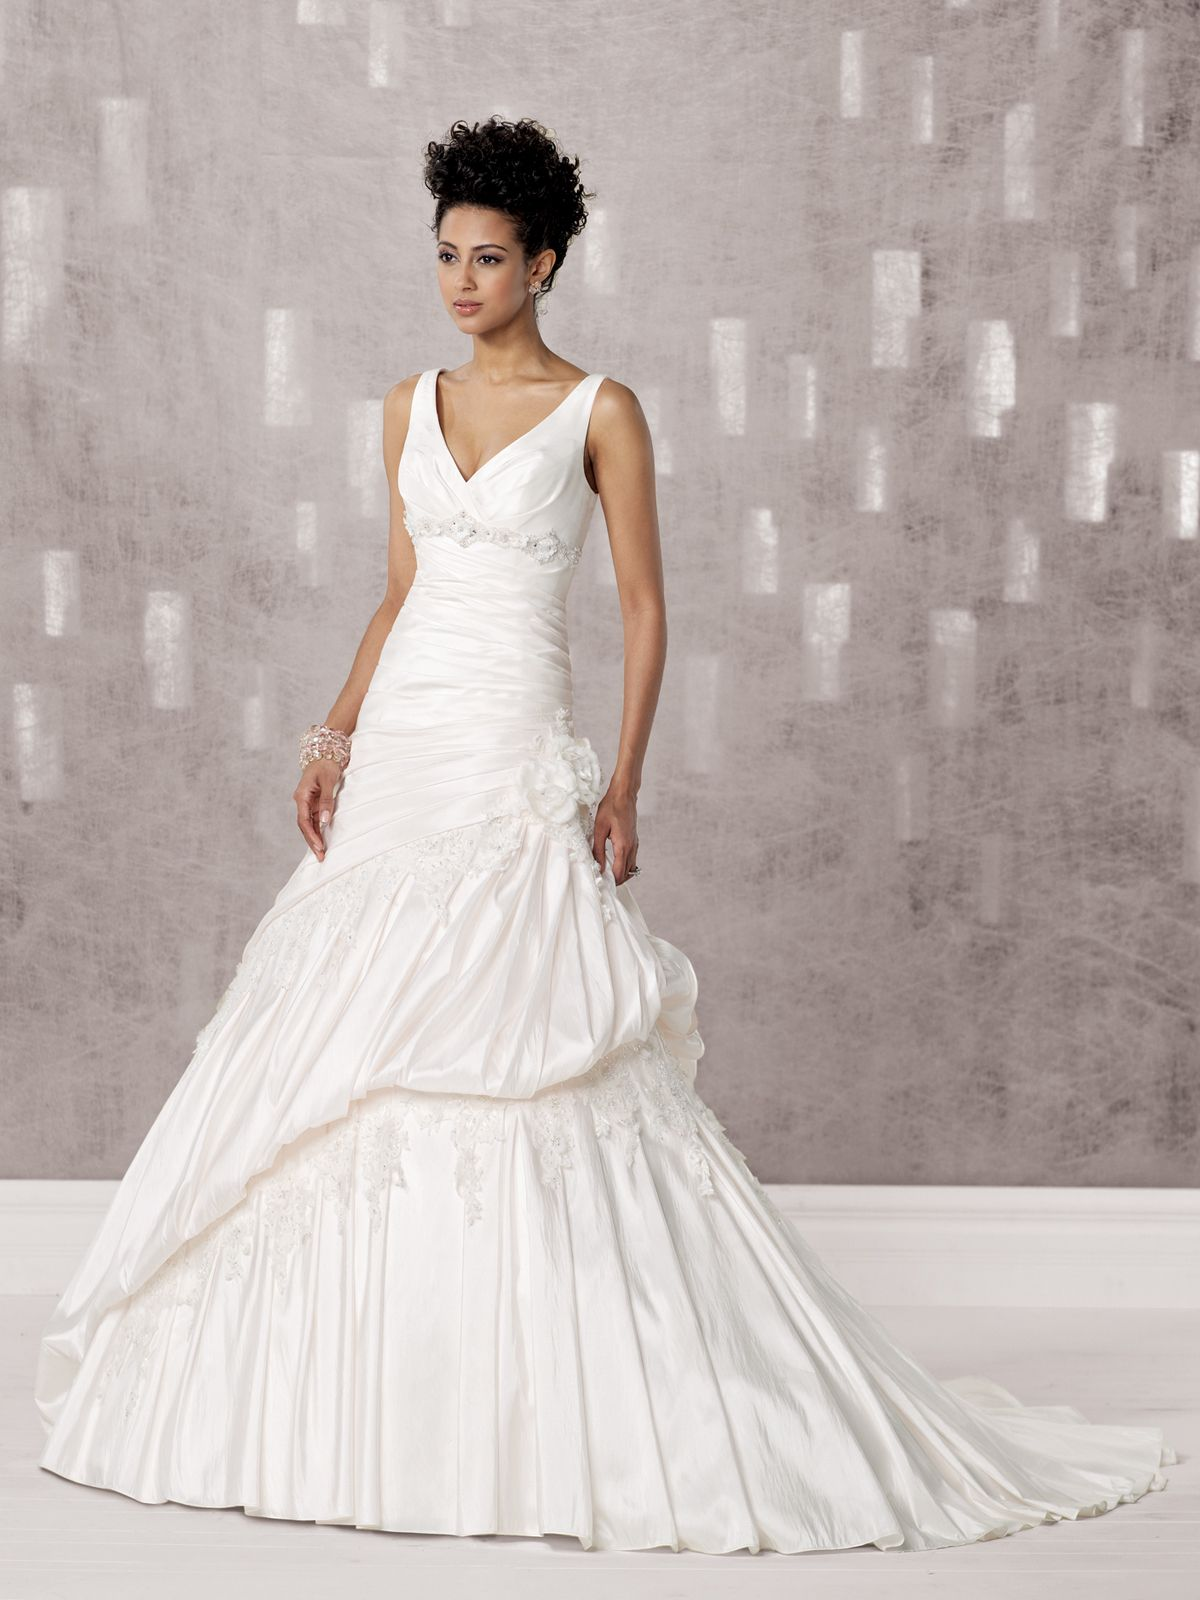 Kathy ireland for mon cheri wedding dresses style never